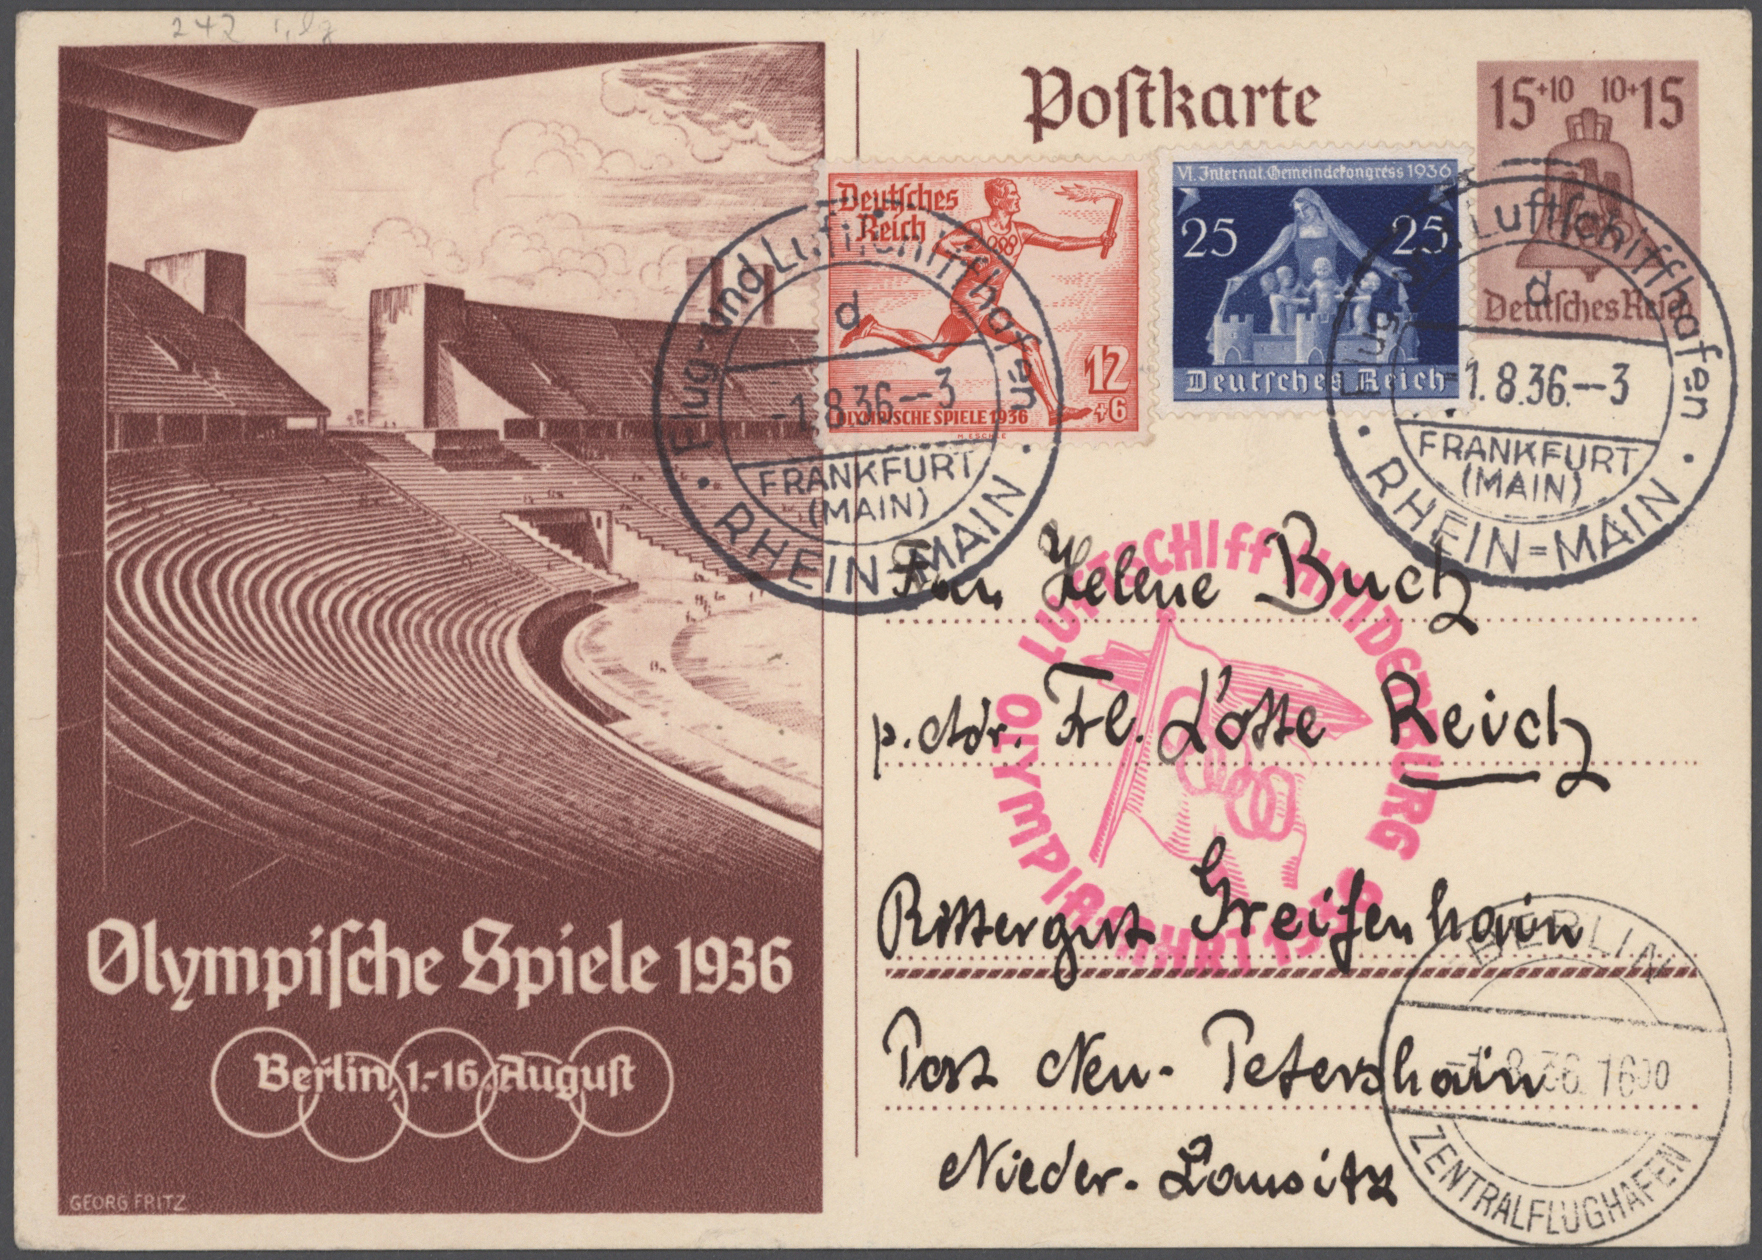 Lot 28556 - Deutsches Reich - 3. Reich  -  Auktionshaus Christoph Gärtner GmbH & Co. KG Sale #46 Gollcetions Germany - including the suplement